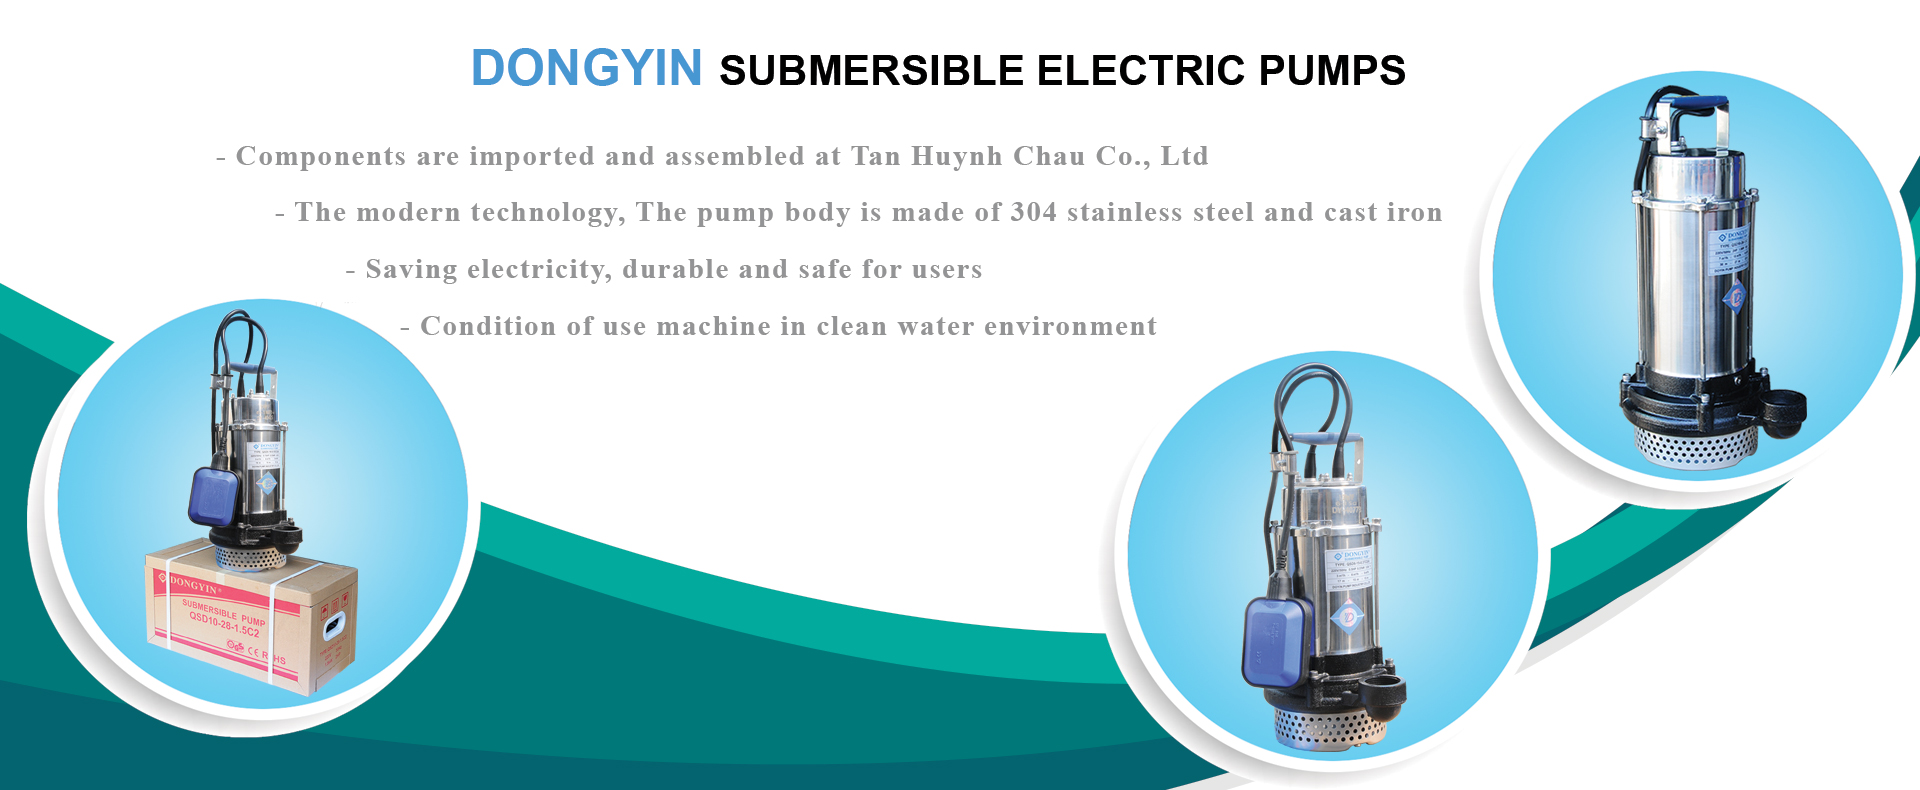 Dongyin submersible electric pumps